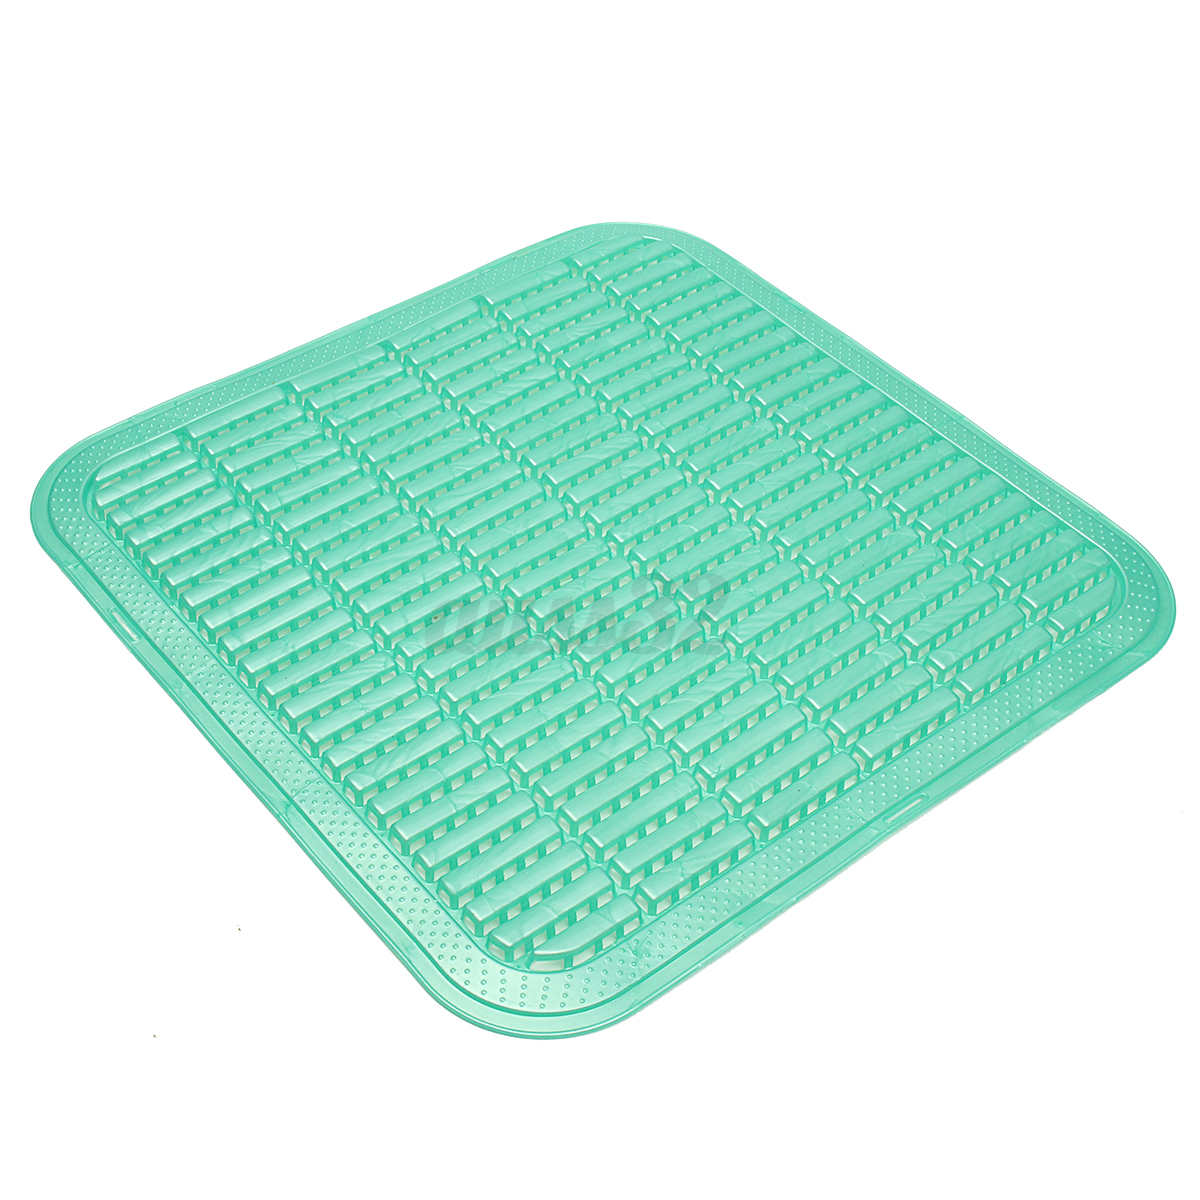 165 Summer Plastic Breathable Cool Car Seat Cushion